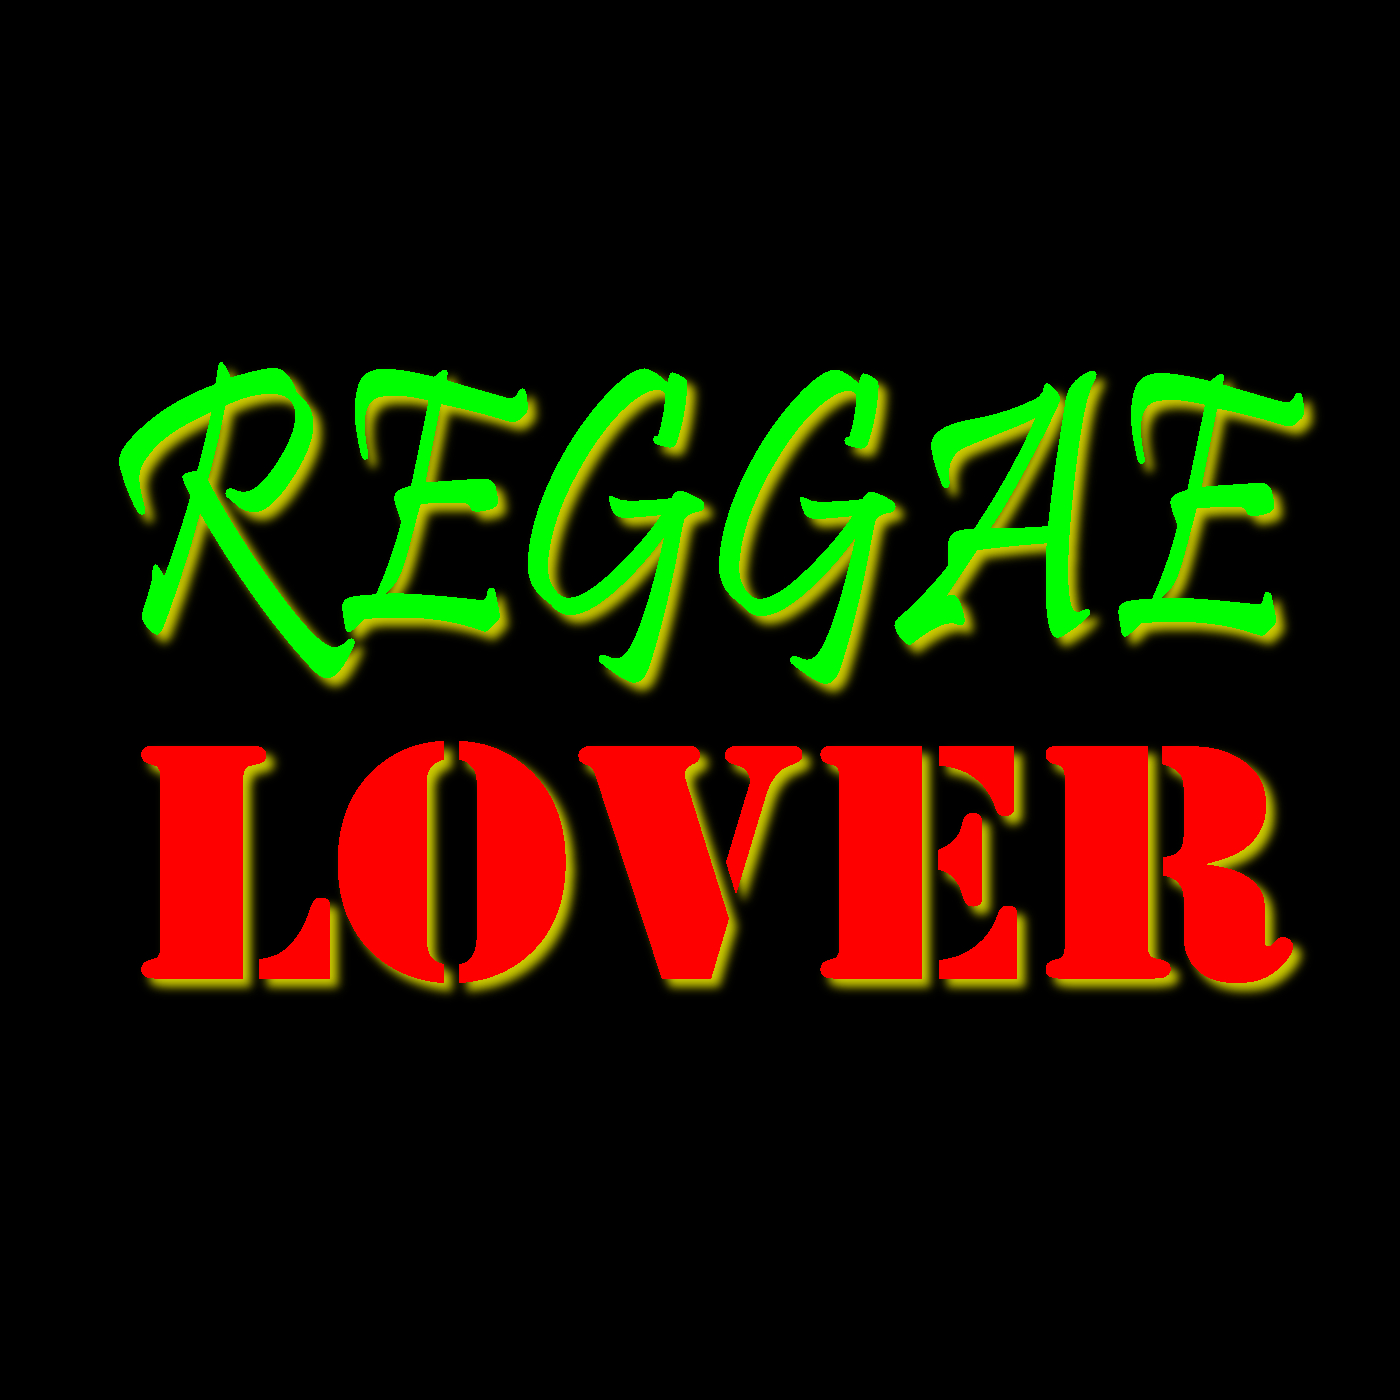 ReggaeLover.com Podcast dedicated to Reggae Lovers around the world